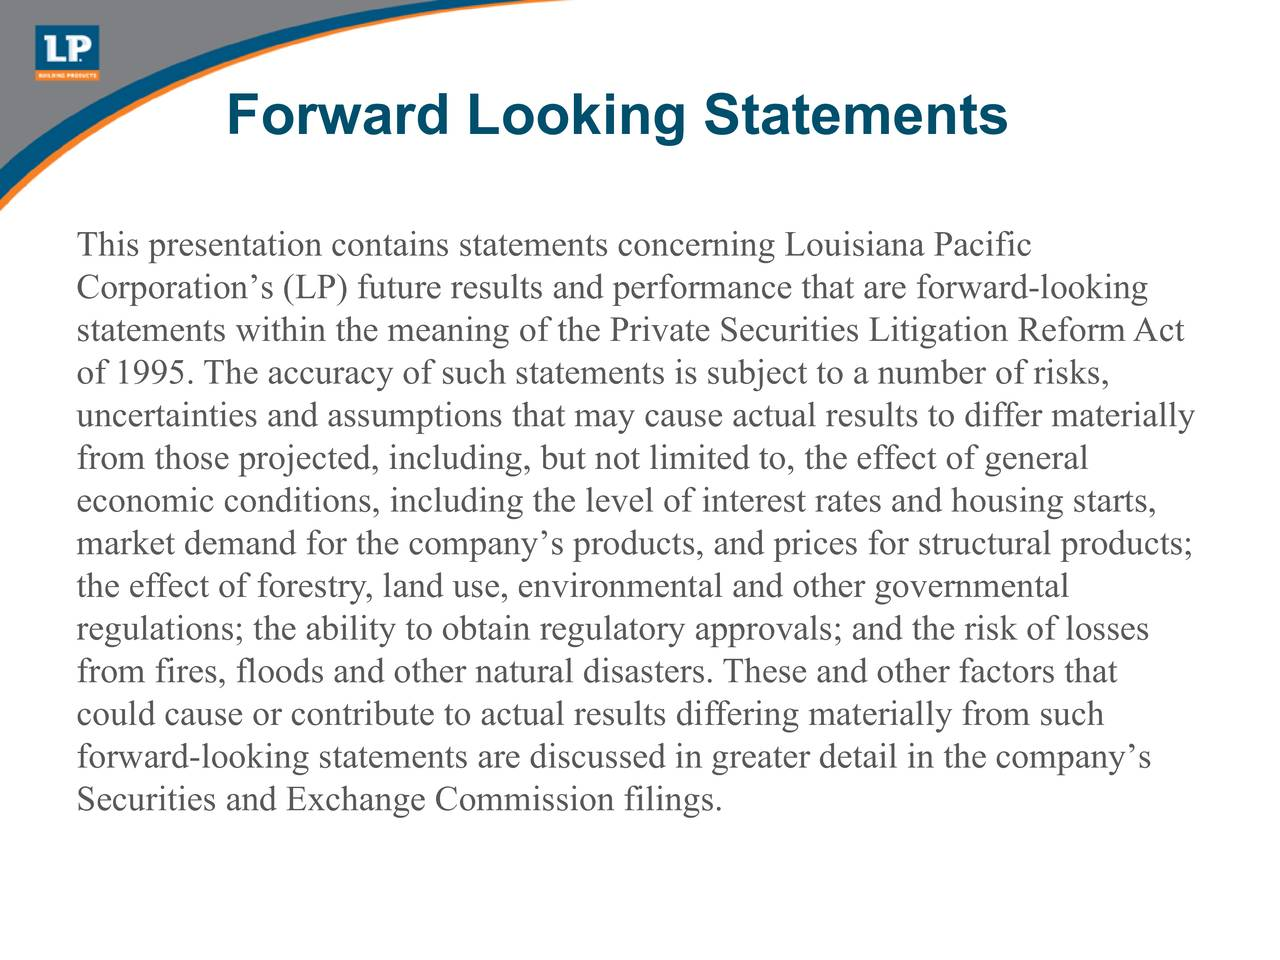 This presentation contains statements concerning Louisiana Pacific Corporations (LP) future results and performance that are forward-looking statements within the meaning of the Private Securities Litigation ReformAct of 1995. The accuracy of such statements is subject to a number of risks, uncertainties and assumptions that may cause actual results to differ materially from those projected, including, but not limited to, the effect of general economic conditions, including the level of interest rates and housing starts, market demand for the companys products, and prices for structural products; the effect of forestry, land use, environmental and other governmental regulations; the ability to obtain regulatory approvals; and the risk of losses from fires, floods and other natural disasters. These and other factors that could cause or contribute to actual results differing materially from such forward-looking statements are discussed in greater detail in the companys Securities and Exchange Commission filings.